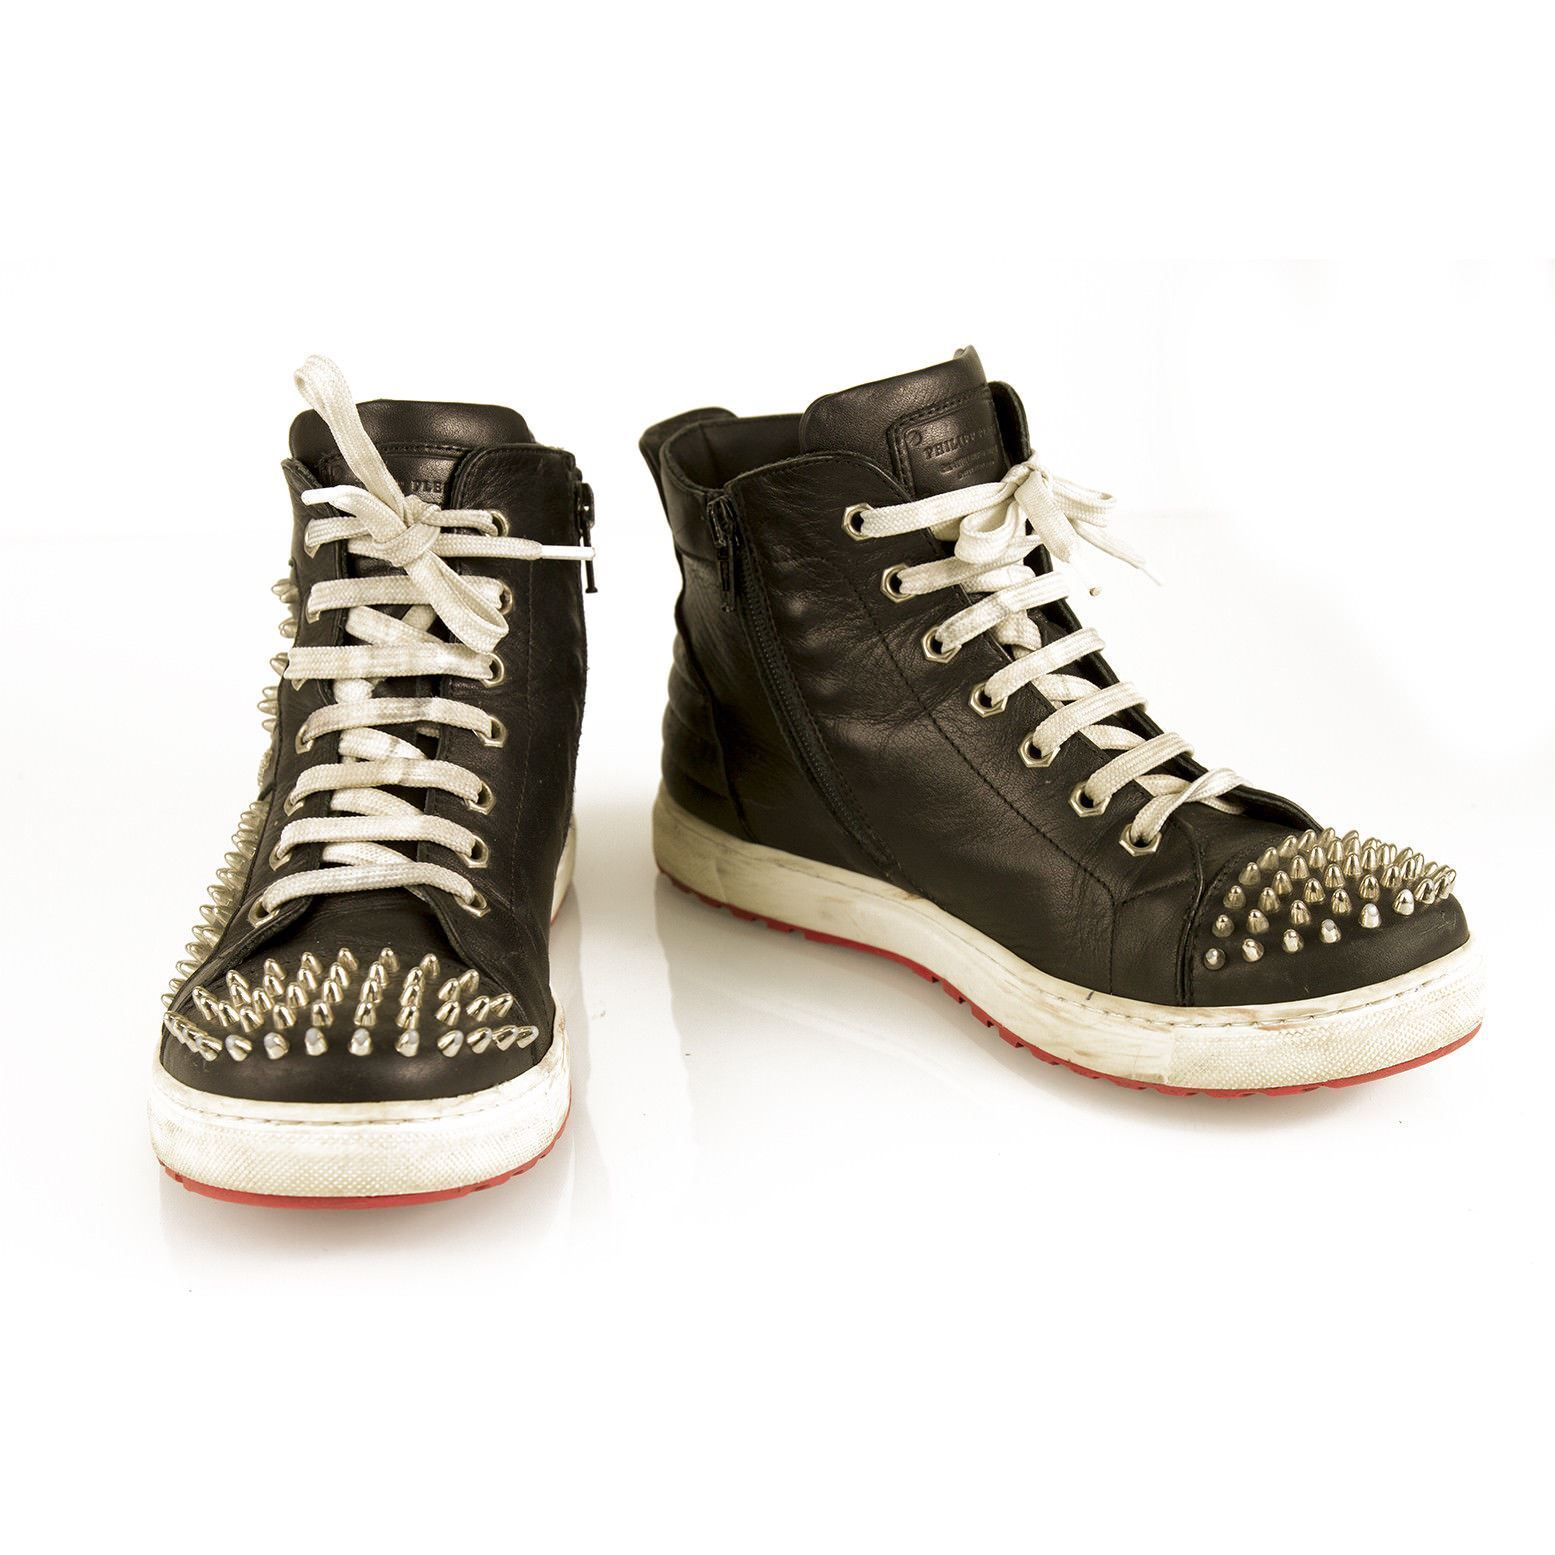 PHILIPP PLEIN  Studded Hi-top Leather Turnschuhe High Top Trainers sz 37 schuhe